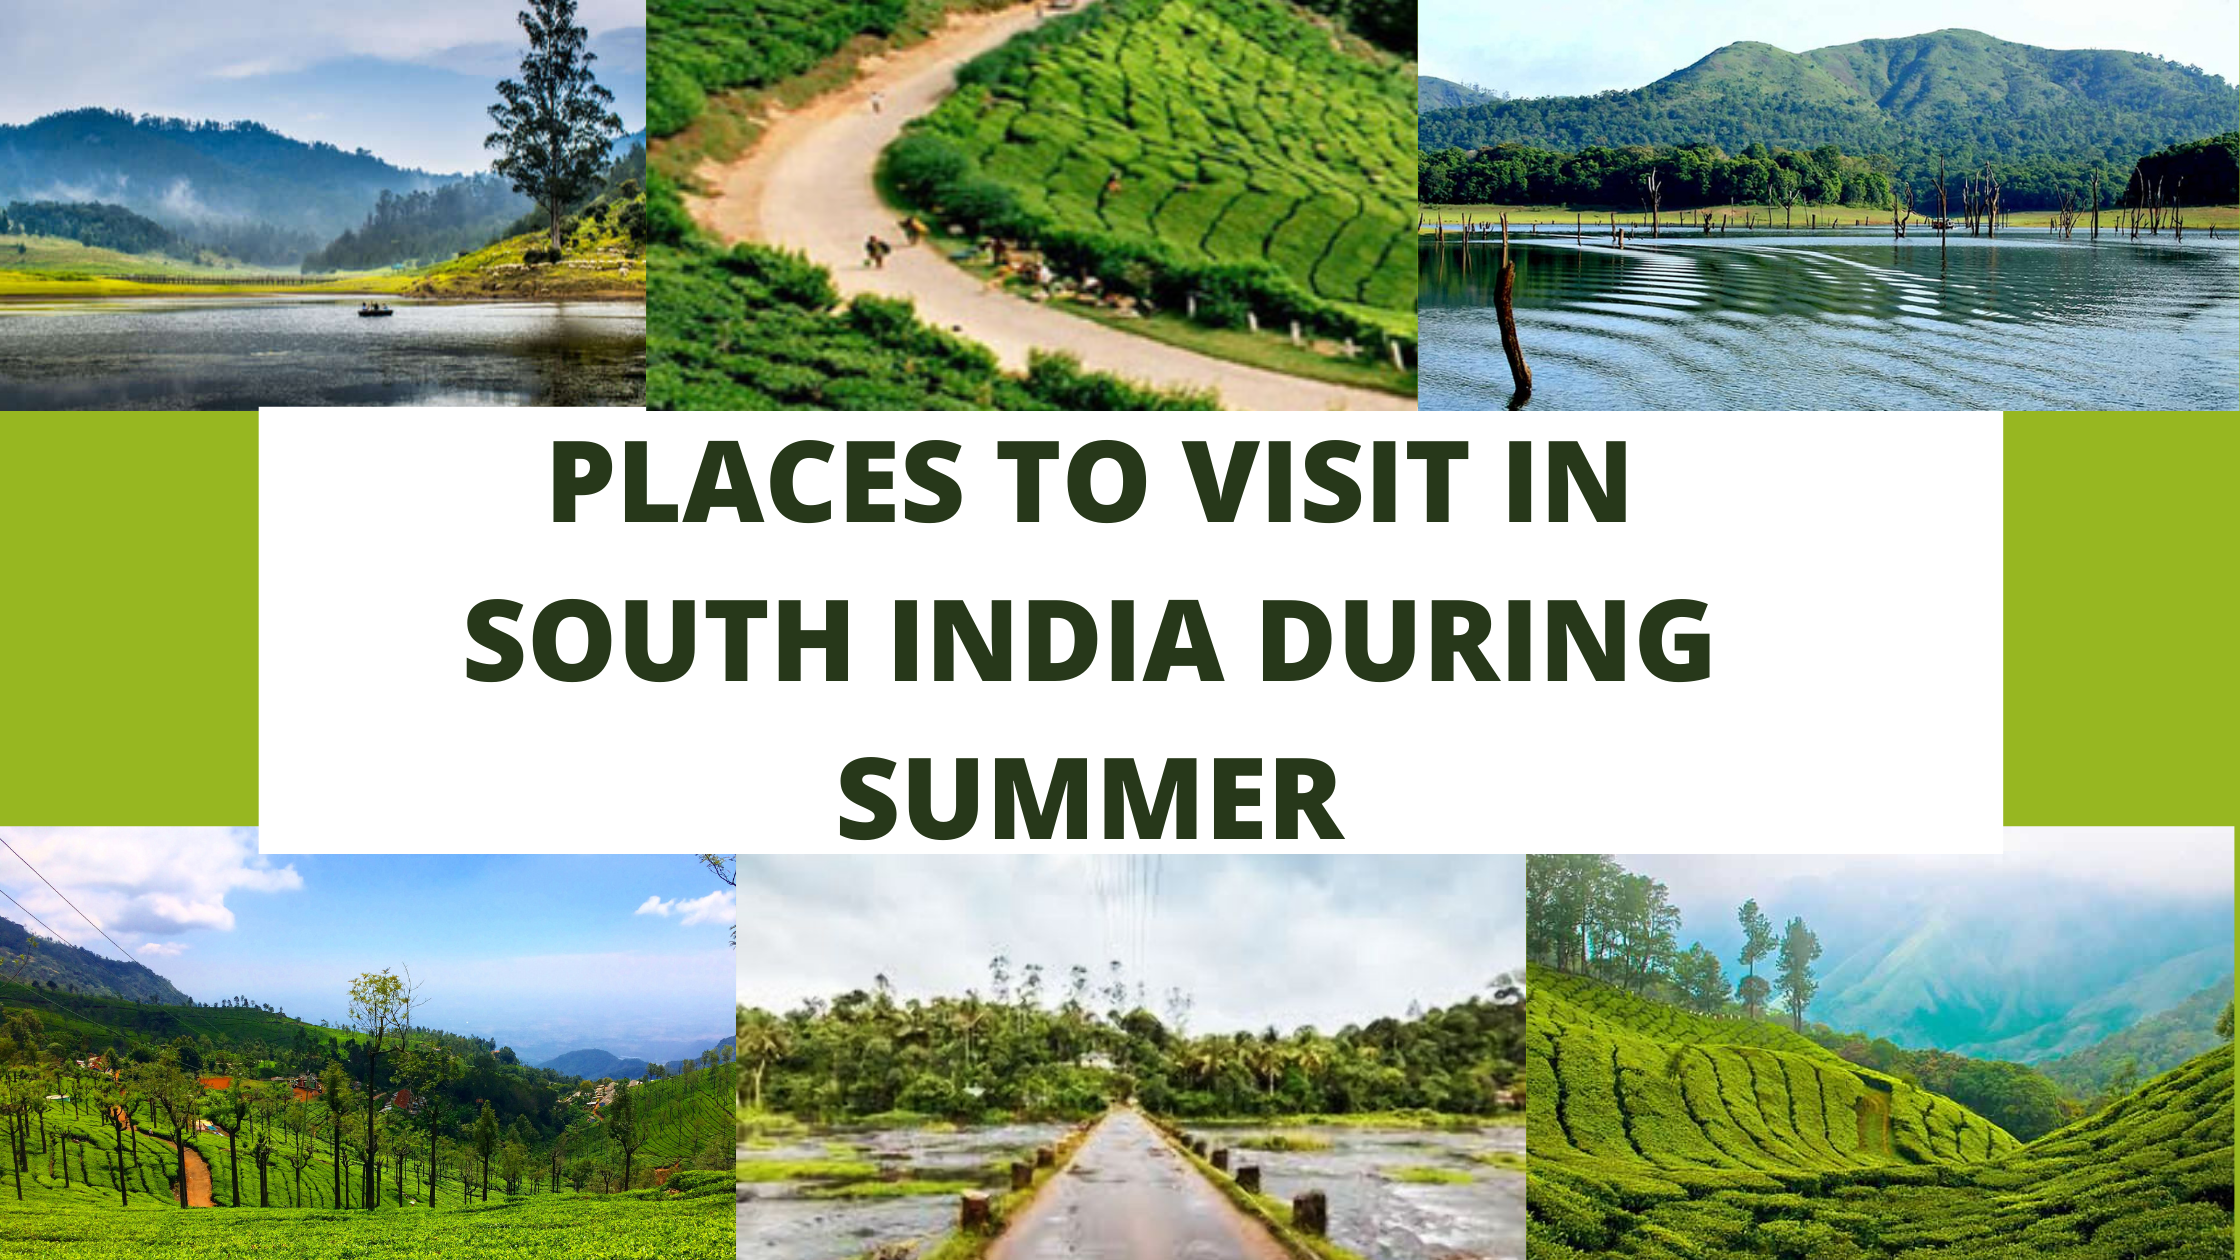 Places to visit in South India during Summers